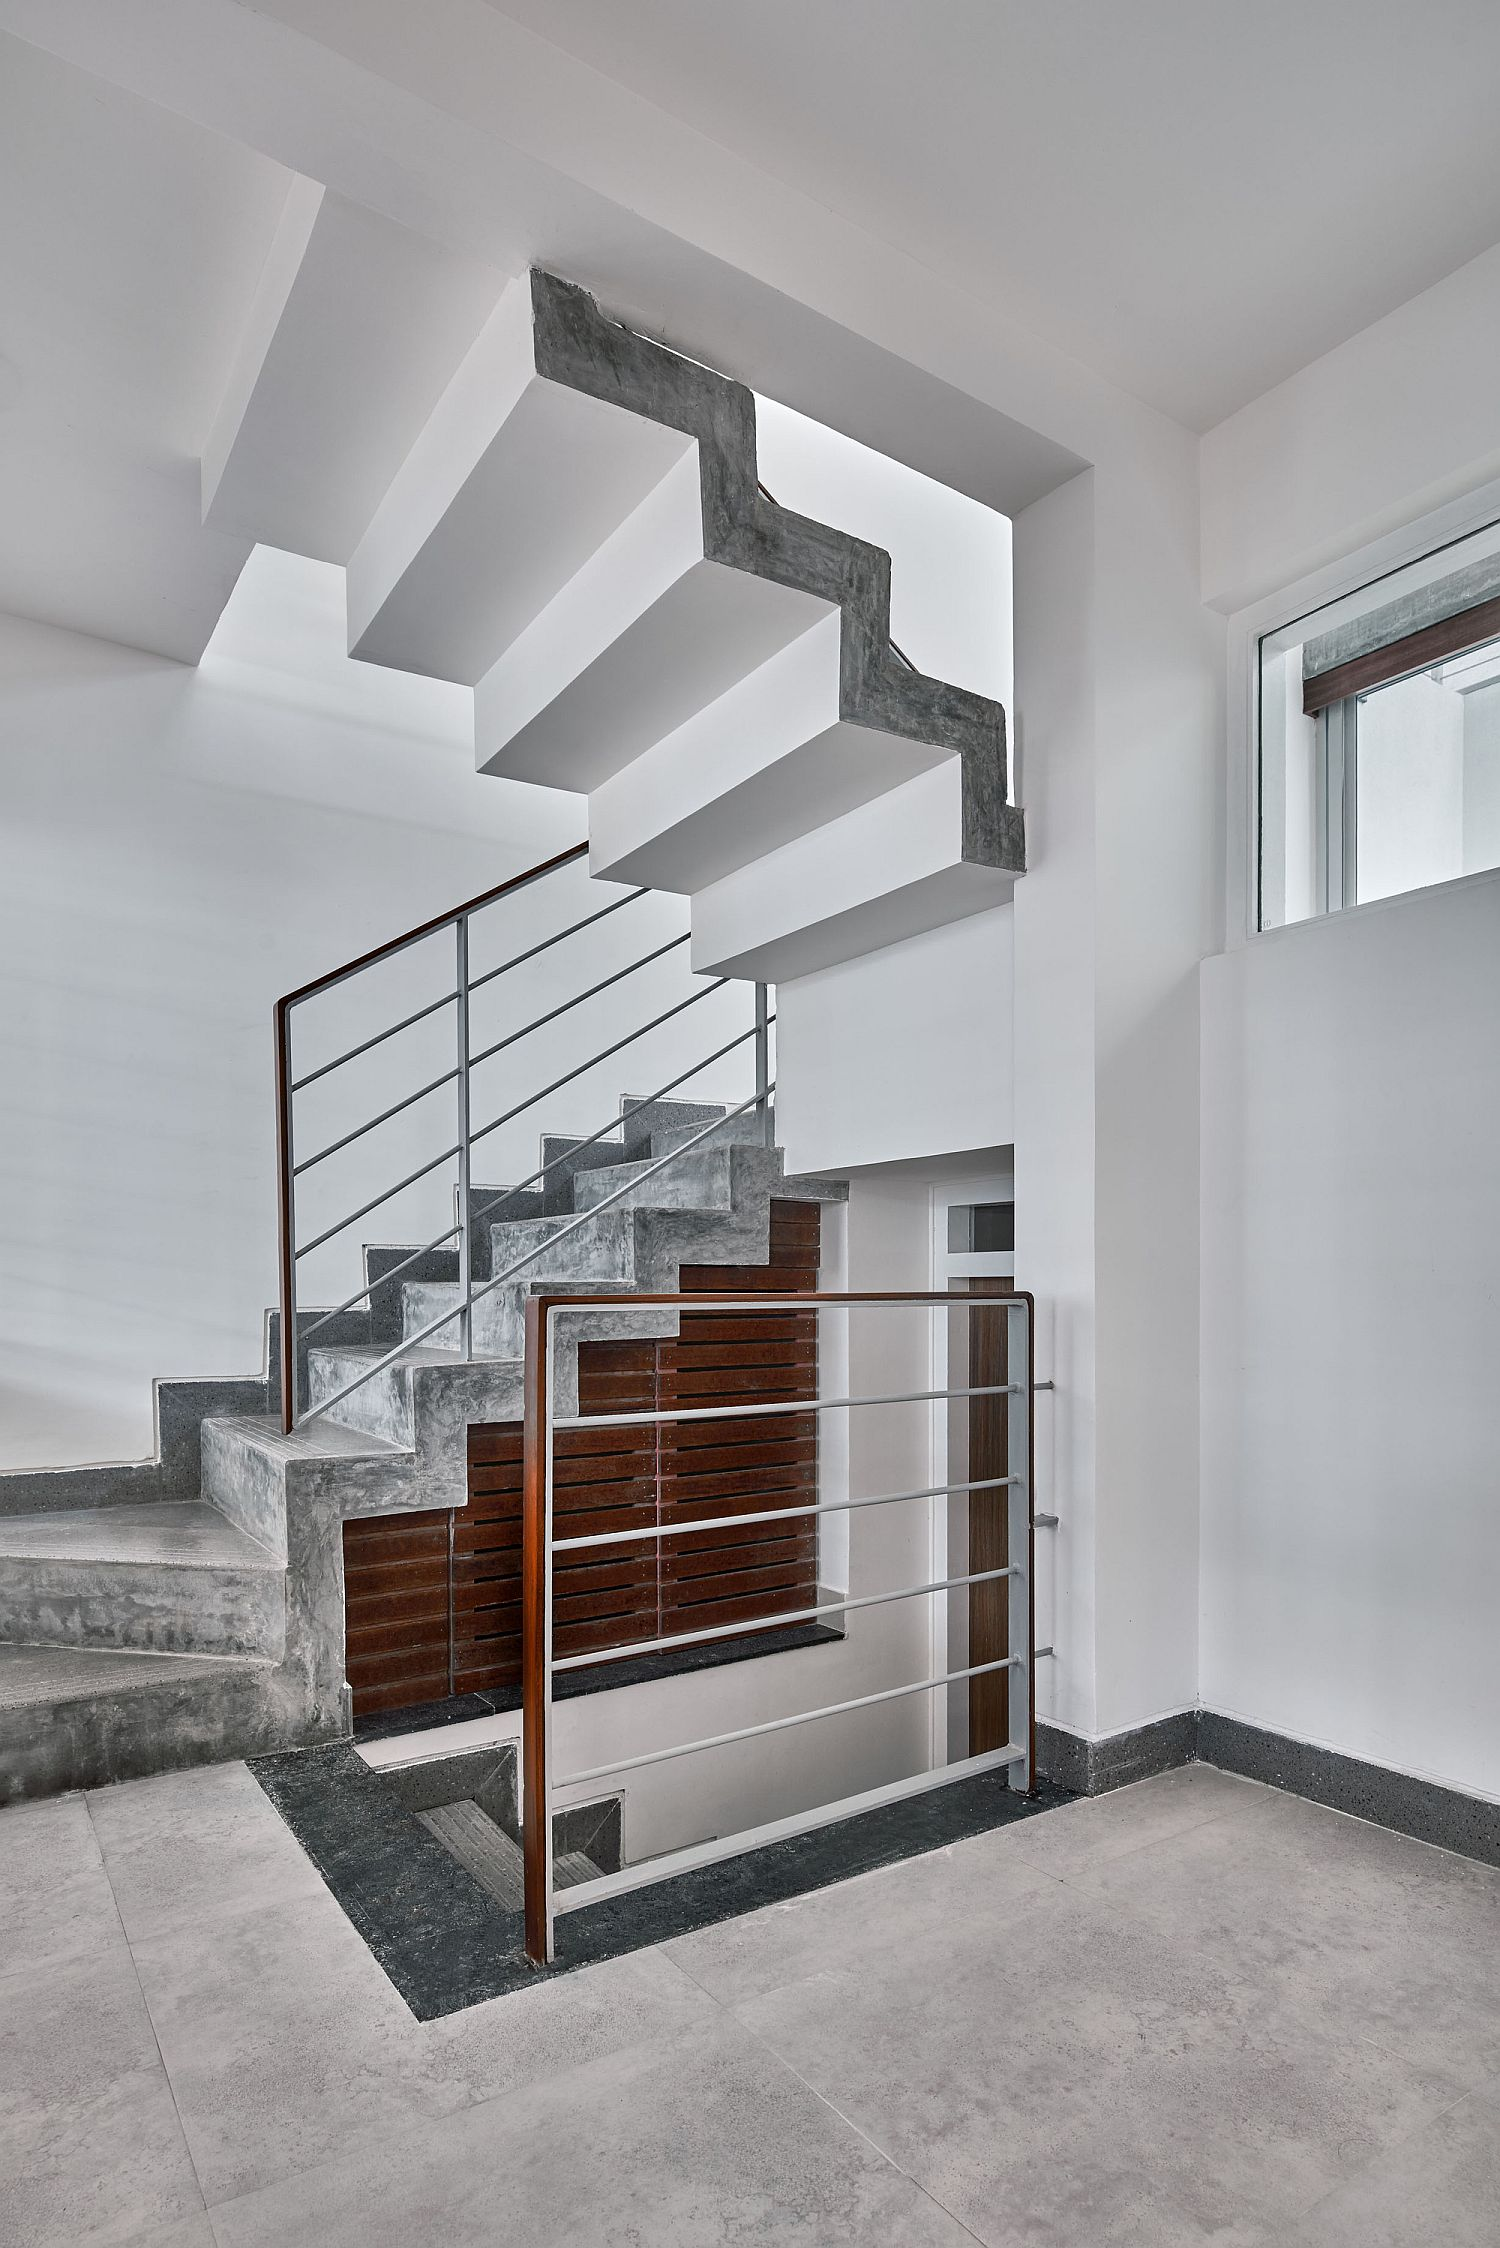 Staircase in concrete fits in perfectly with the neutral color palette of the home